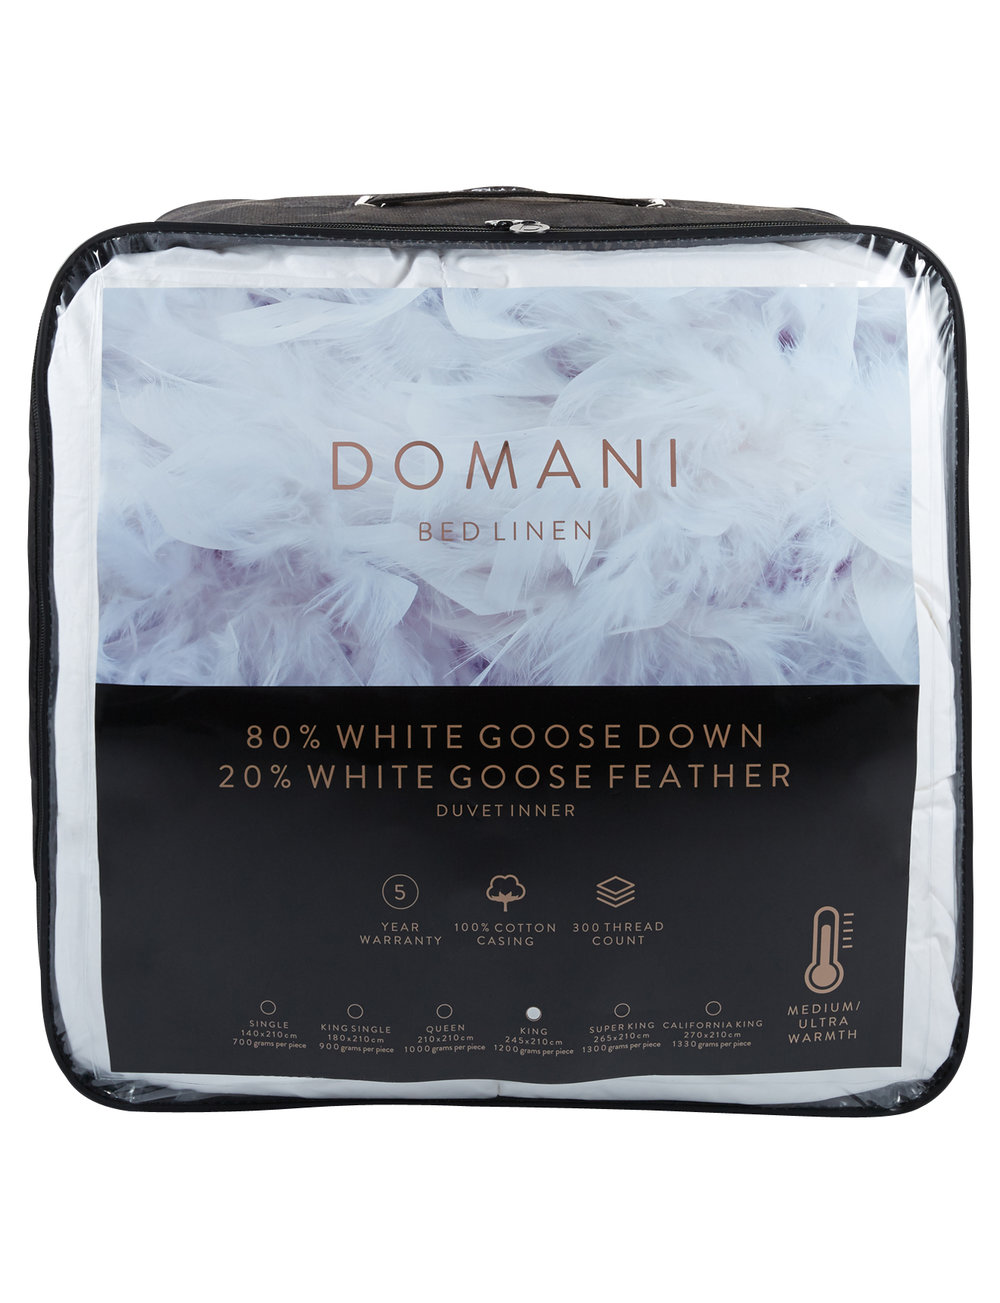 80:20 Goose Down & Feather Duvet Inner.jpg